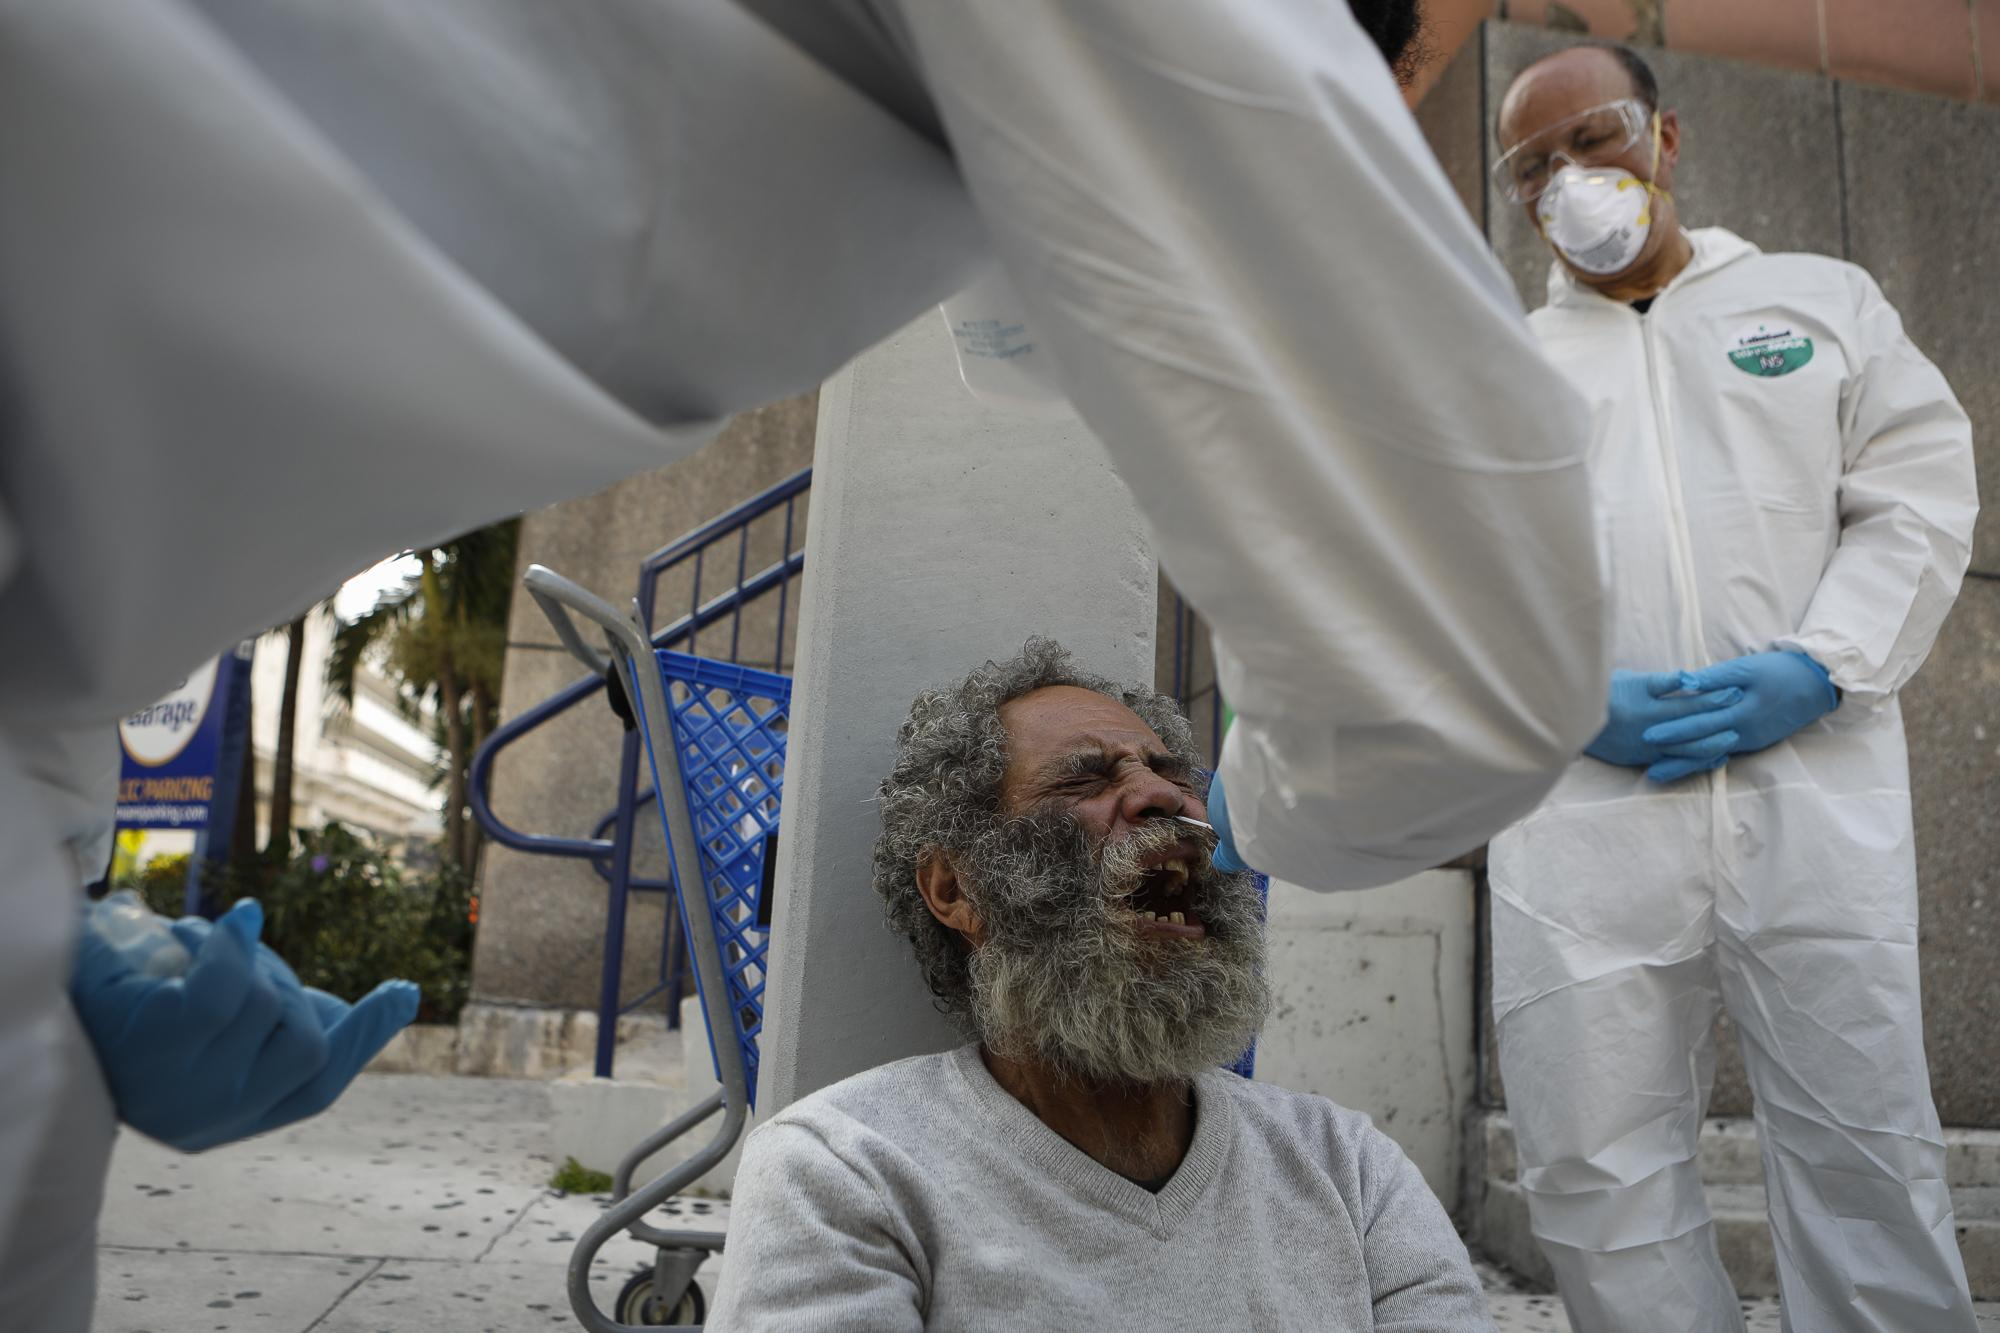 A homeless man reacts as a worker uses a swap to collect a sample during a Miami-Dade County testing operation for the coronavirus disease (COVID-19), in downtown Miami, Florida, U.S., April 16, 2020. REUTERS/Marco Bello